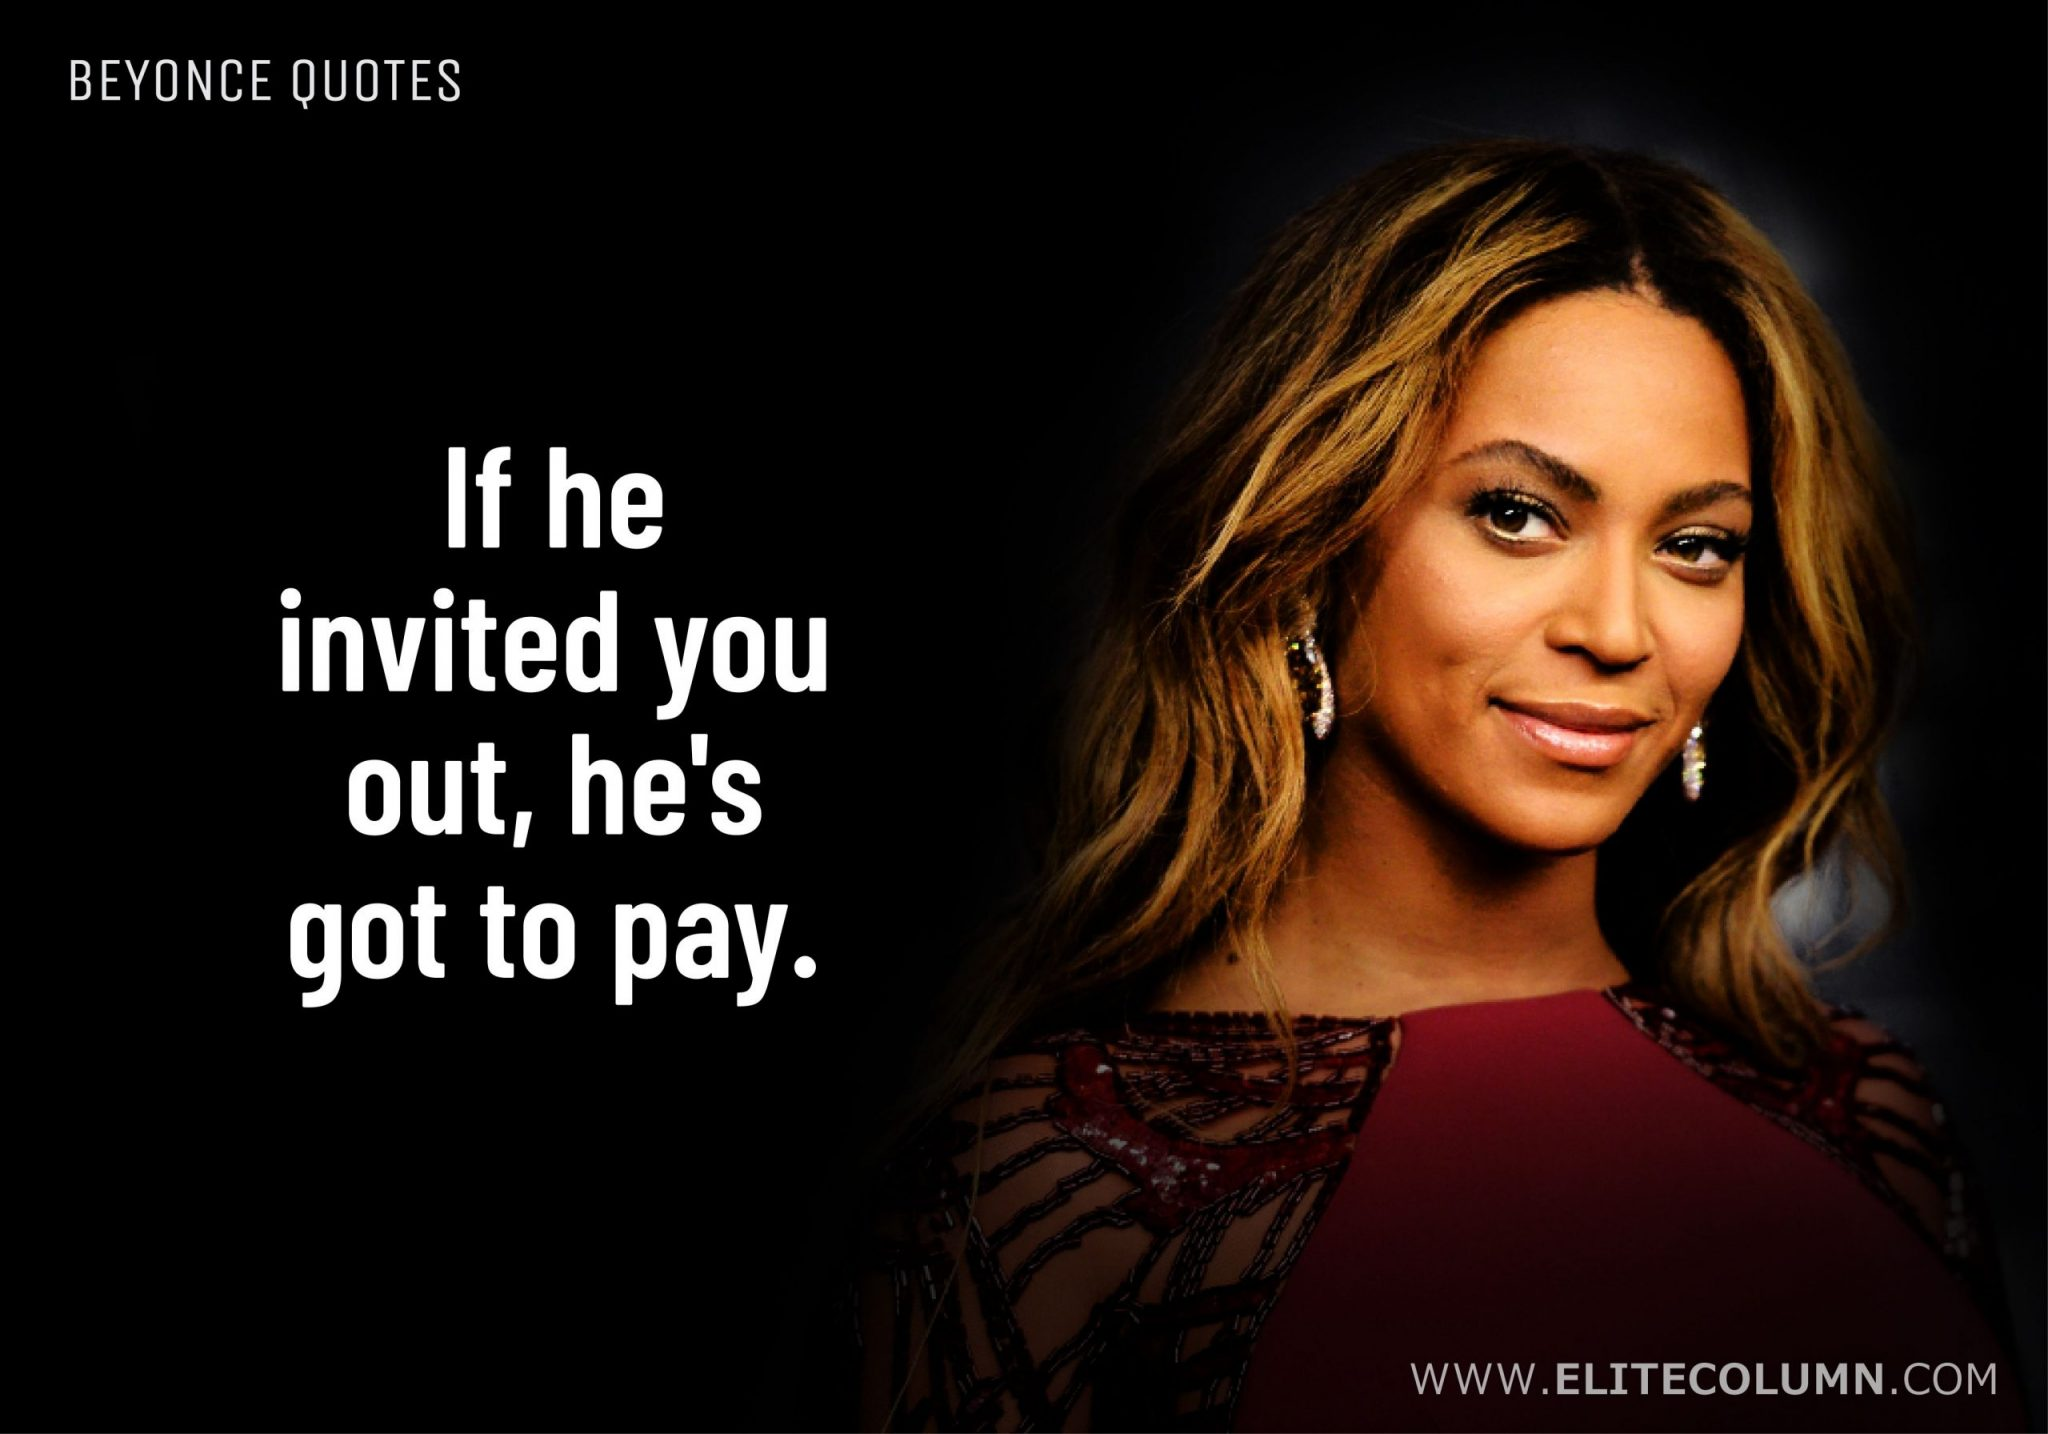 Beyonce Quotes (5)